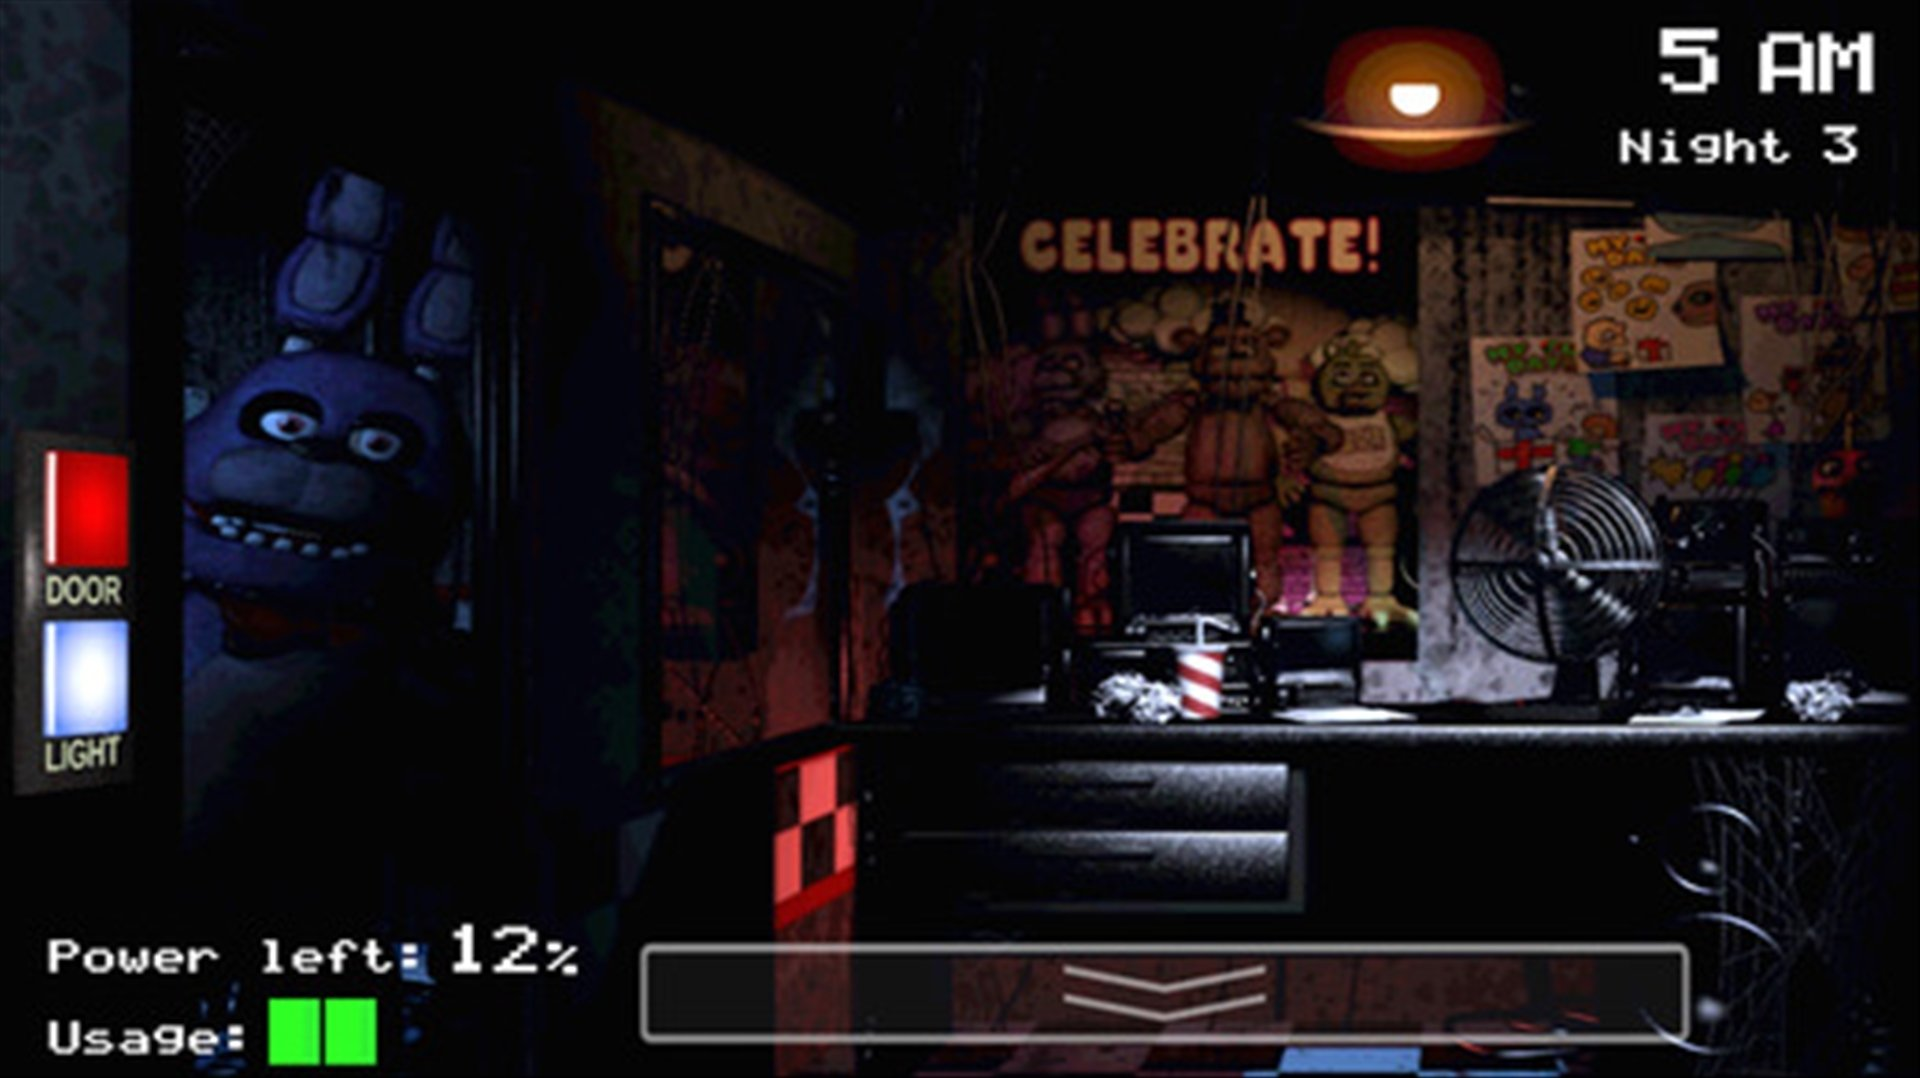 Five Nights at Freddy's iPhone image 4